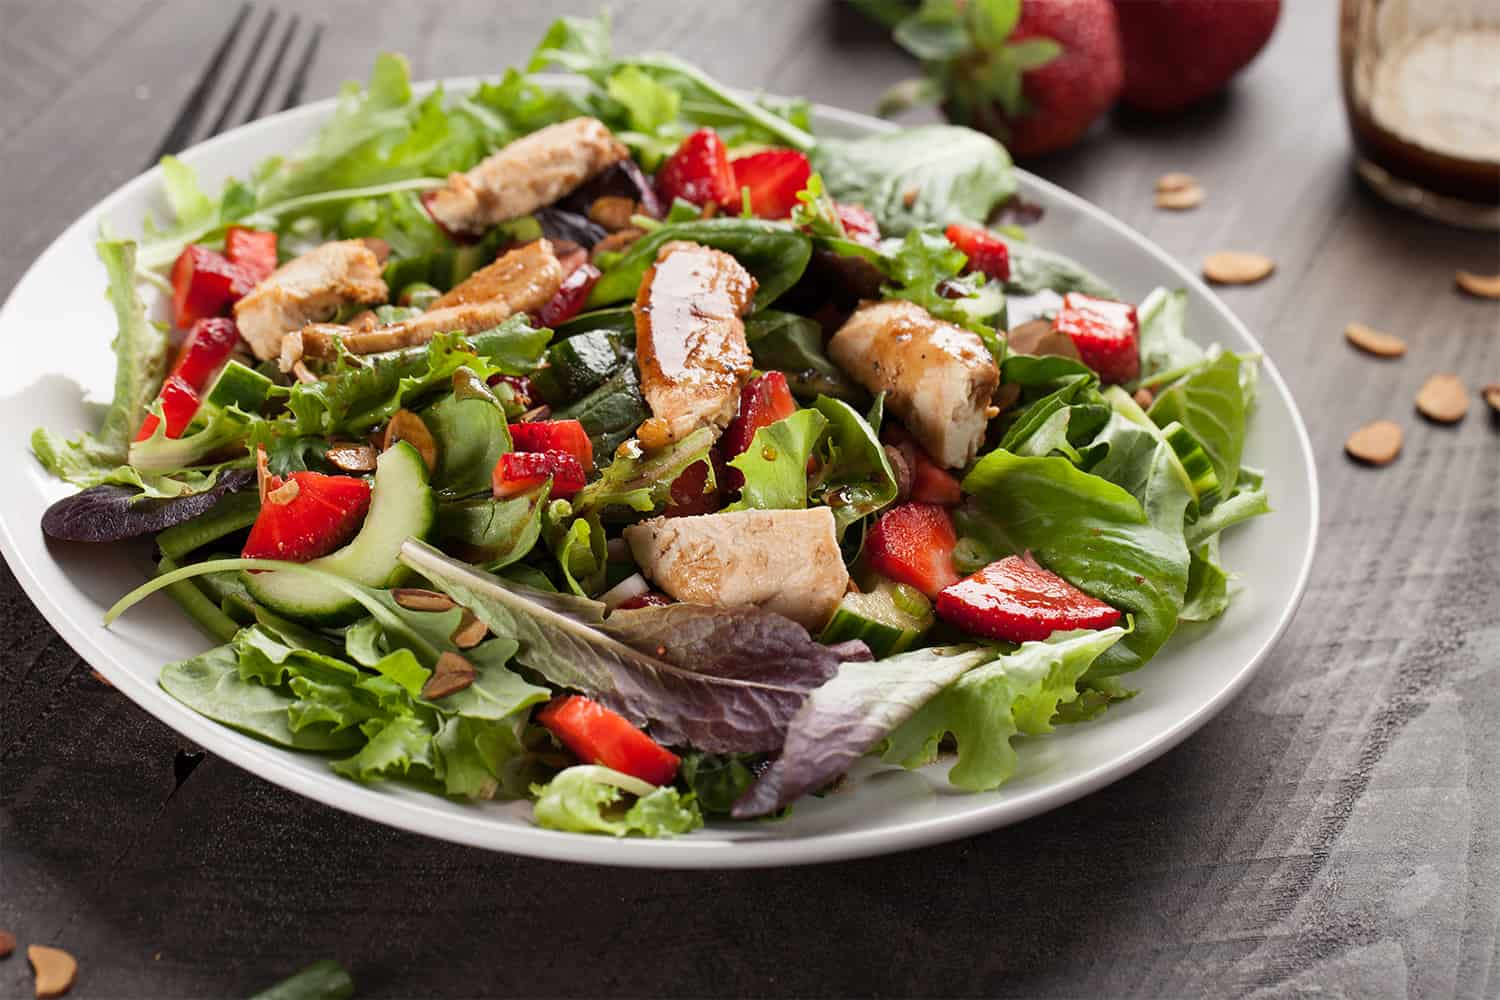 Spring Mix Salad with Balsamic Honey Glazed Chicken_1500x1000.jpeg